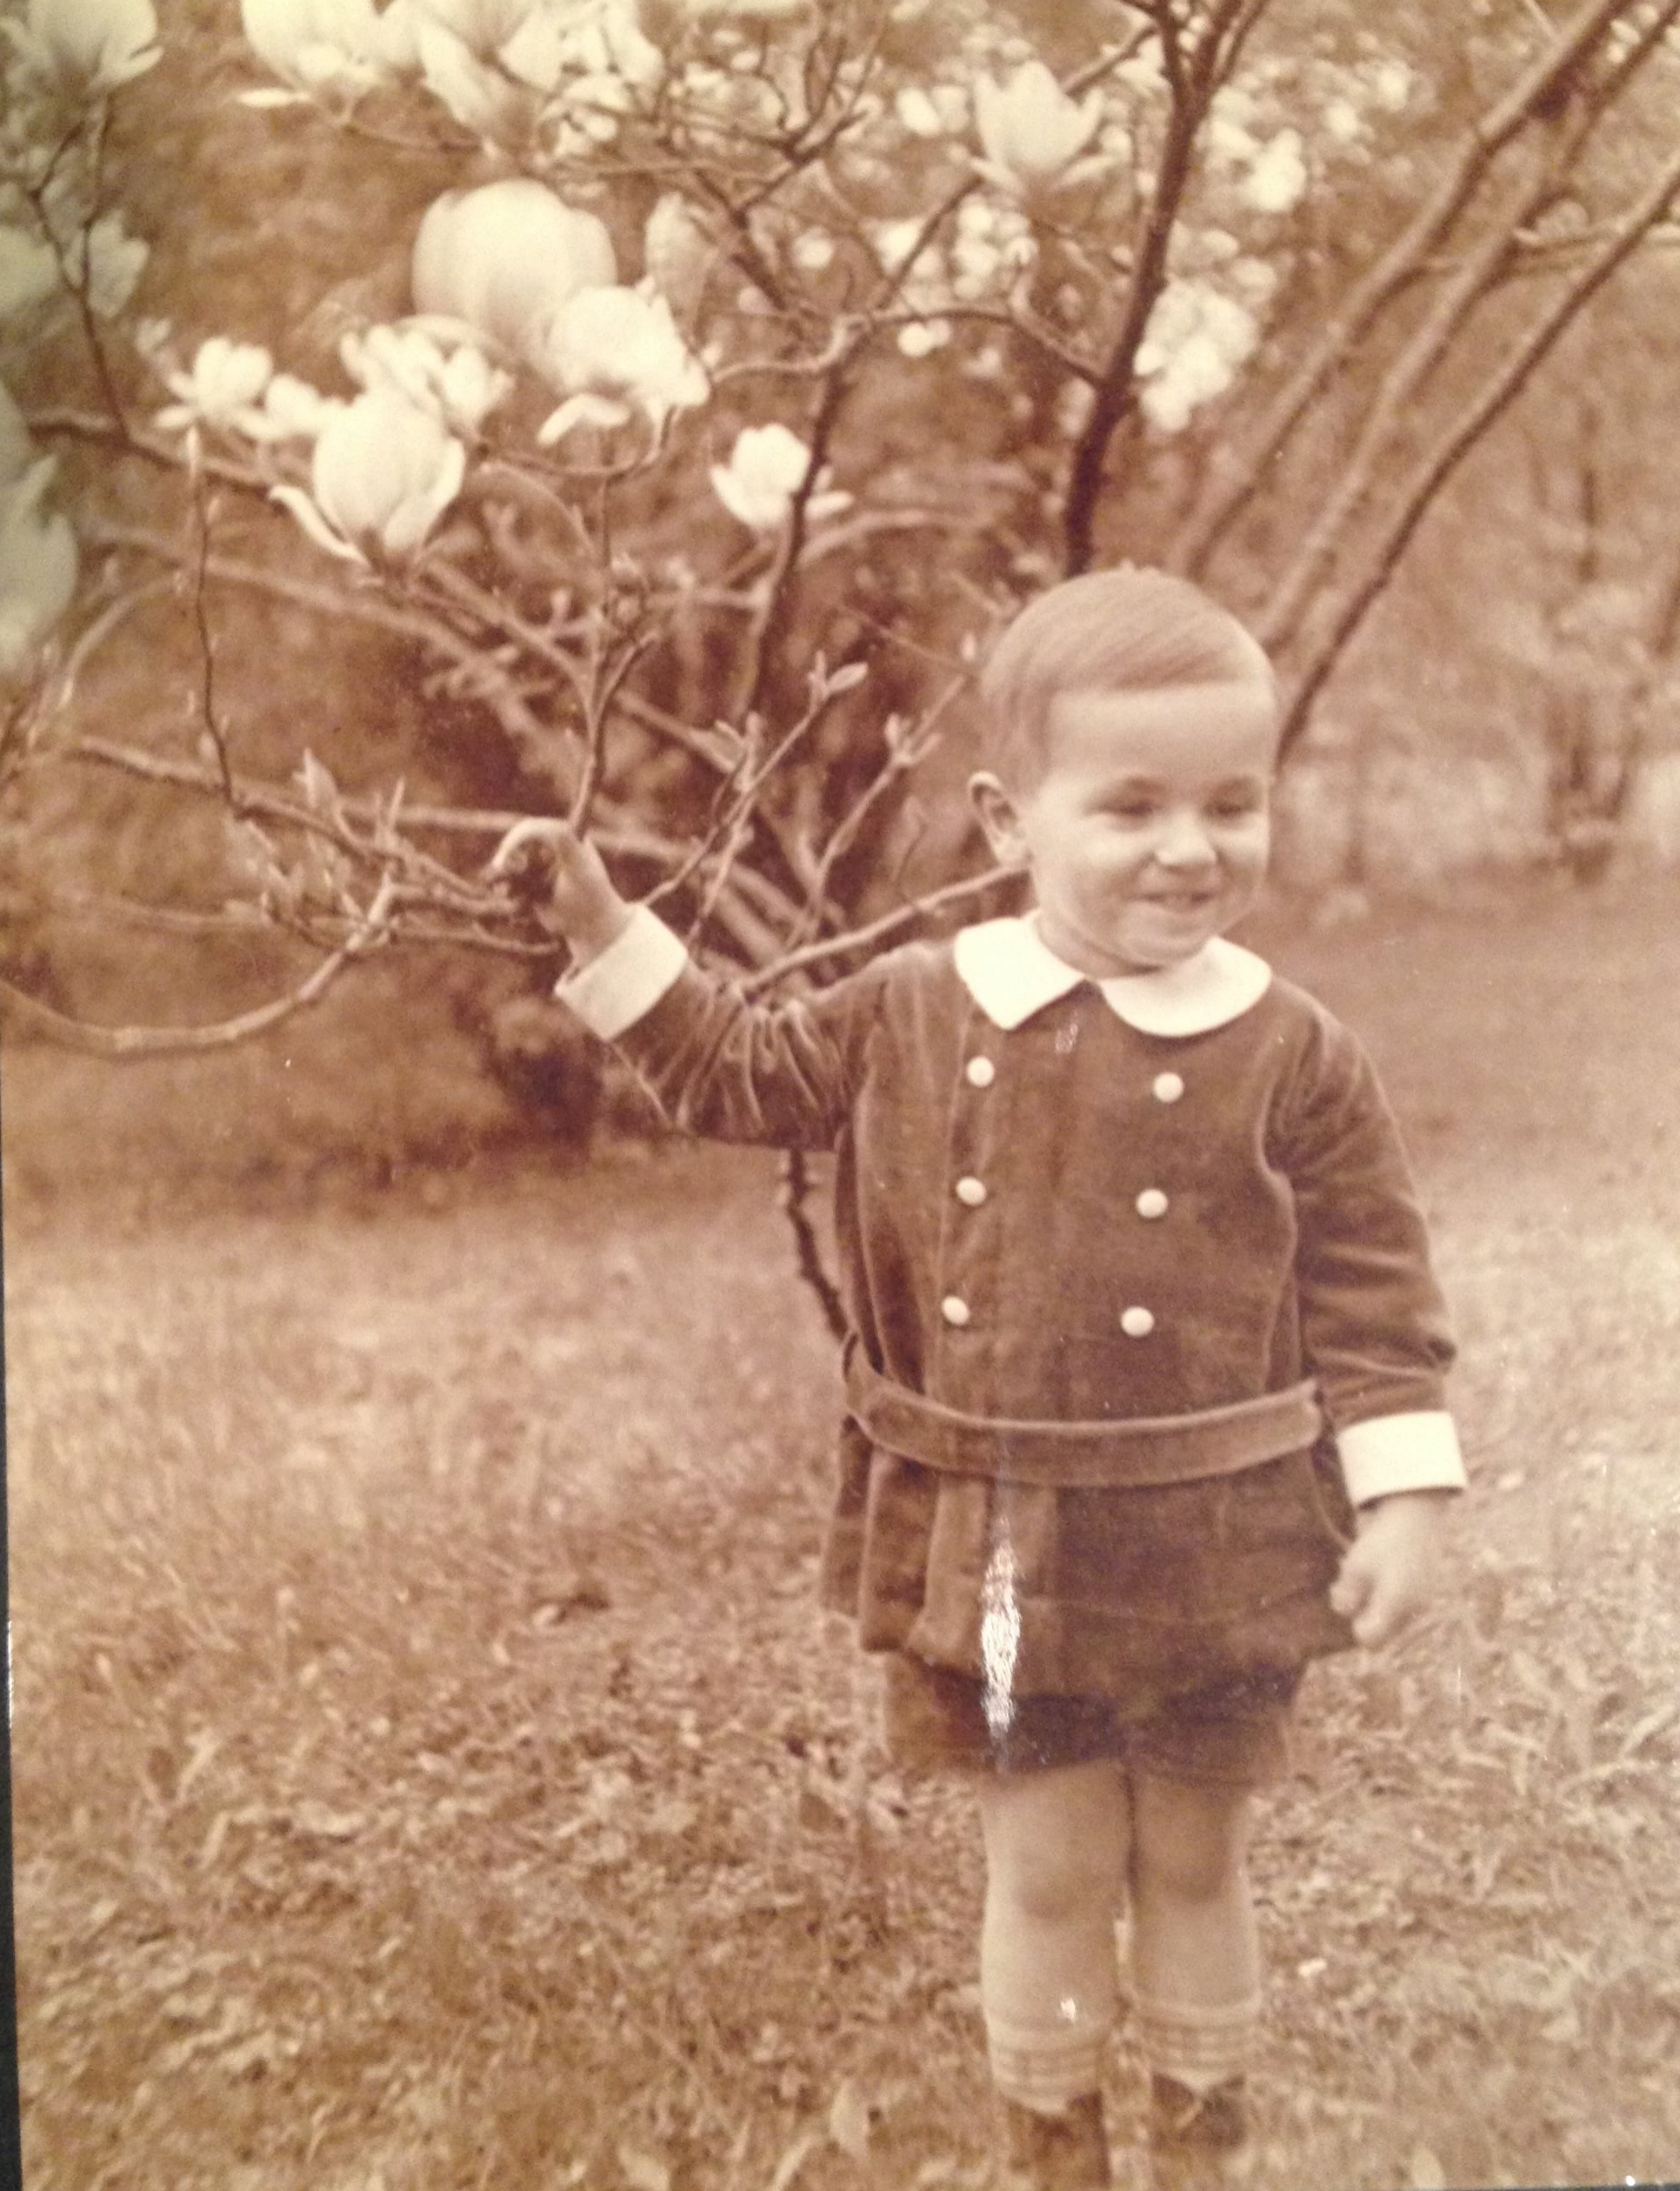 My Uncle Dieter as a child